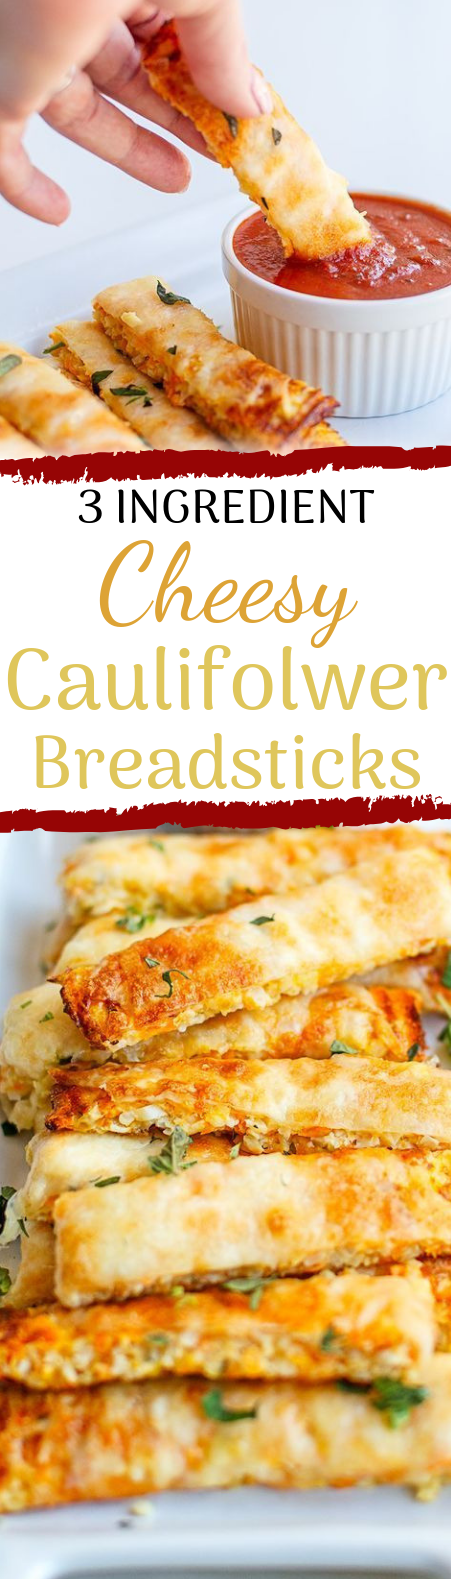 3 INGREDIENT CHEESY CAULIFLOWER BREADSTICKS #healthysnack #lowcarb